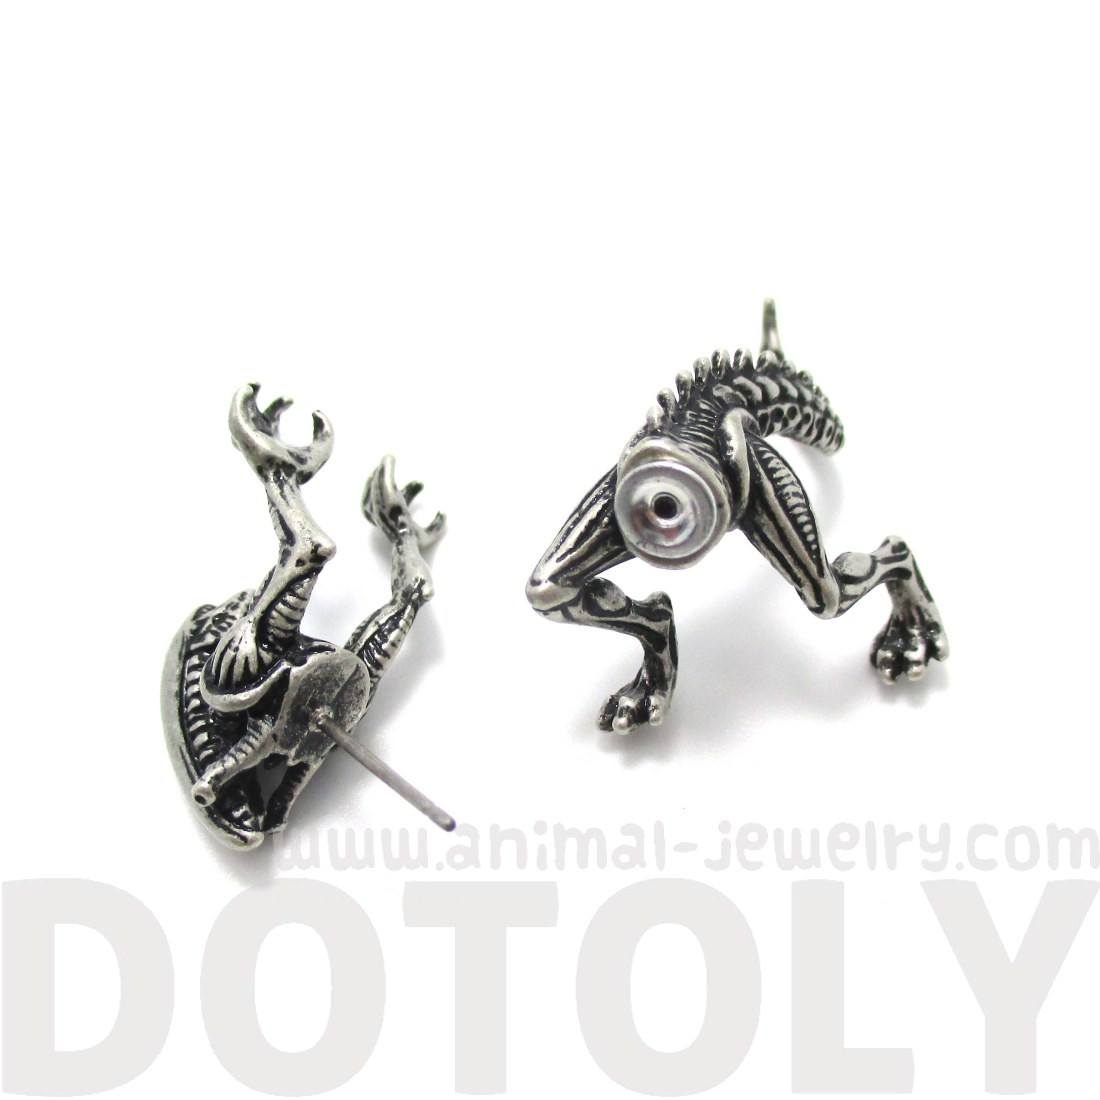 Xenomorph Alien vs Predator AVP Shaped Earring in Silver